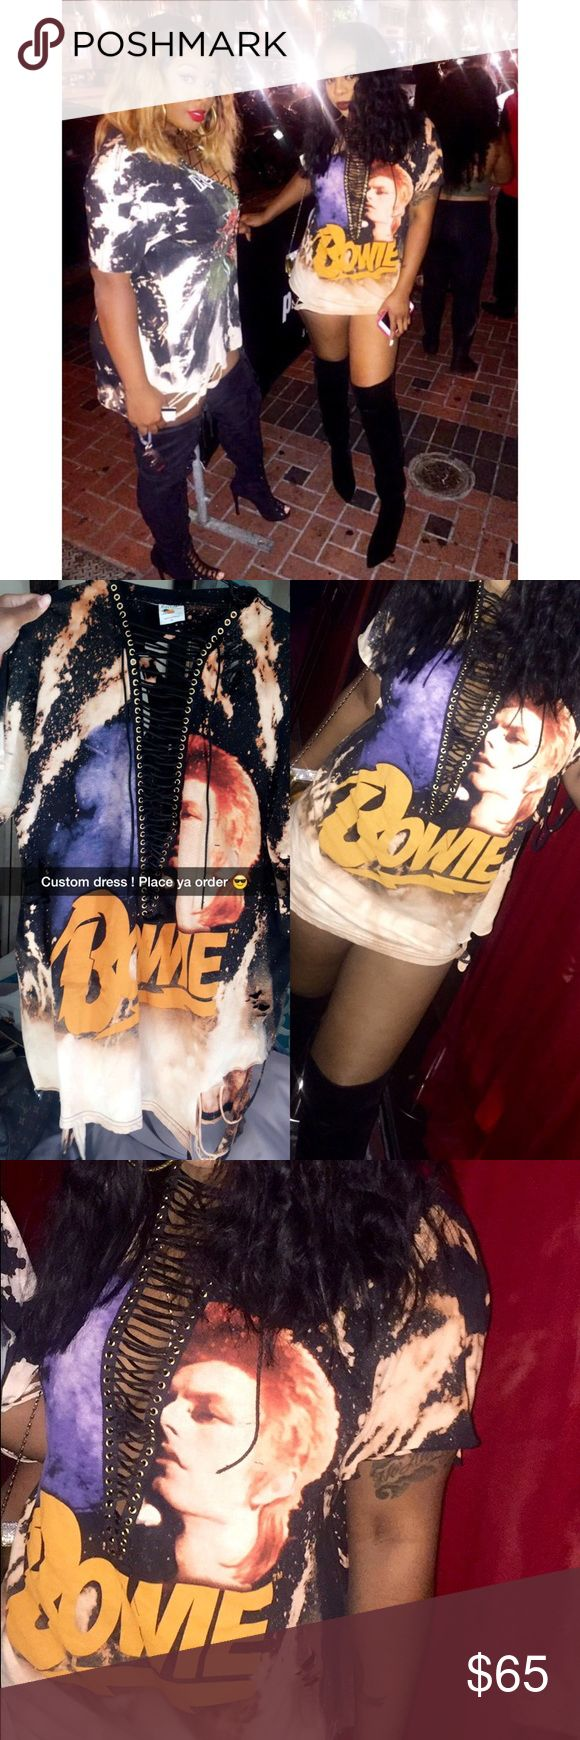 David Bowie distressed T shirt dress David Bowie Graphic Distressed unisex T shirt / OVER SIZED can be worn as a shirt or a dress . I'm 5'7 . Worn once I just had this shirt custom made for a event ! Bleach splattered / rips / holes . With lace up / Can be tied up if you like . Very trendy at the moment ! Feel free to make an offer ;) Dresses Mini